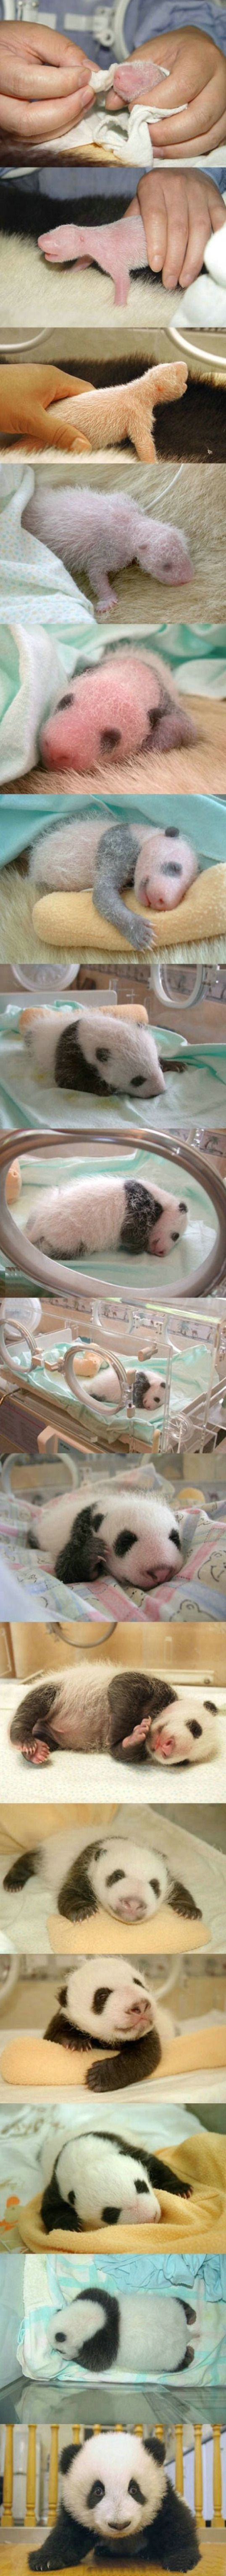 Have you ever seen a newborn baby Panda? No? I guess today is your lucky day.